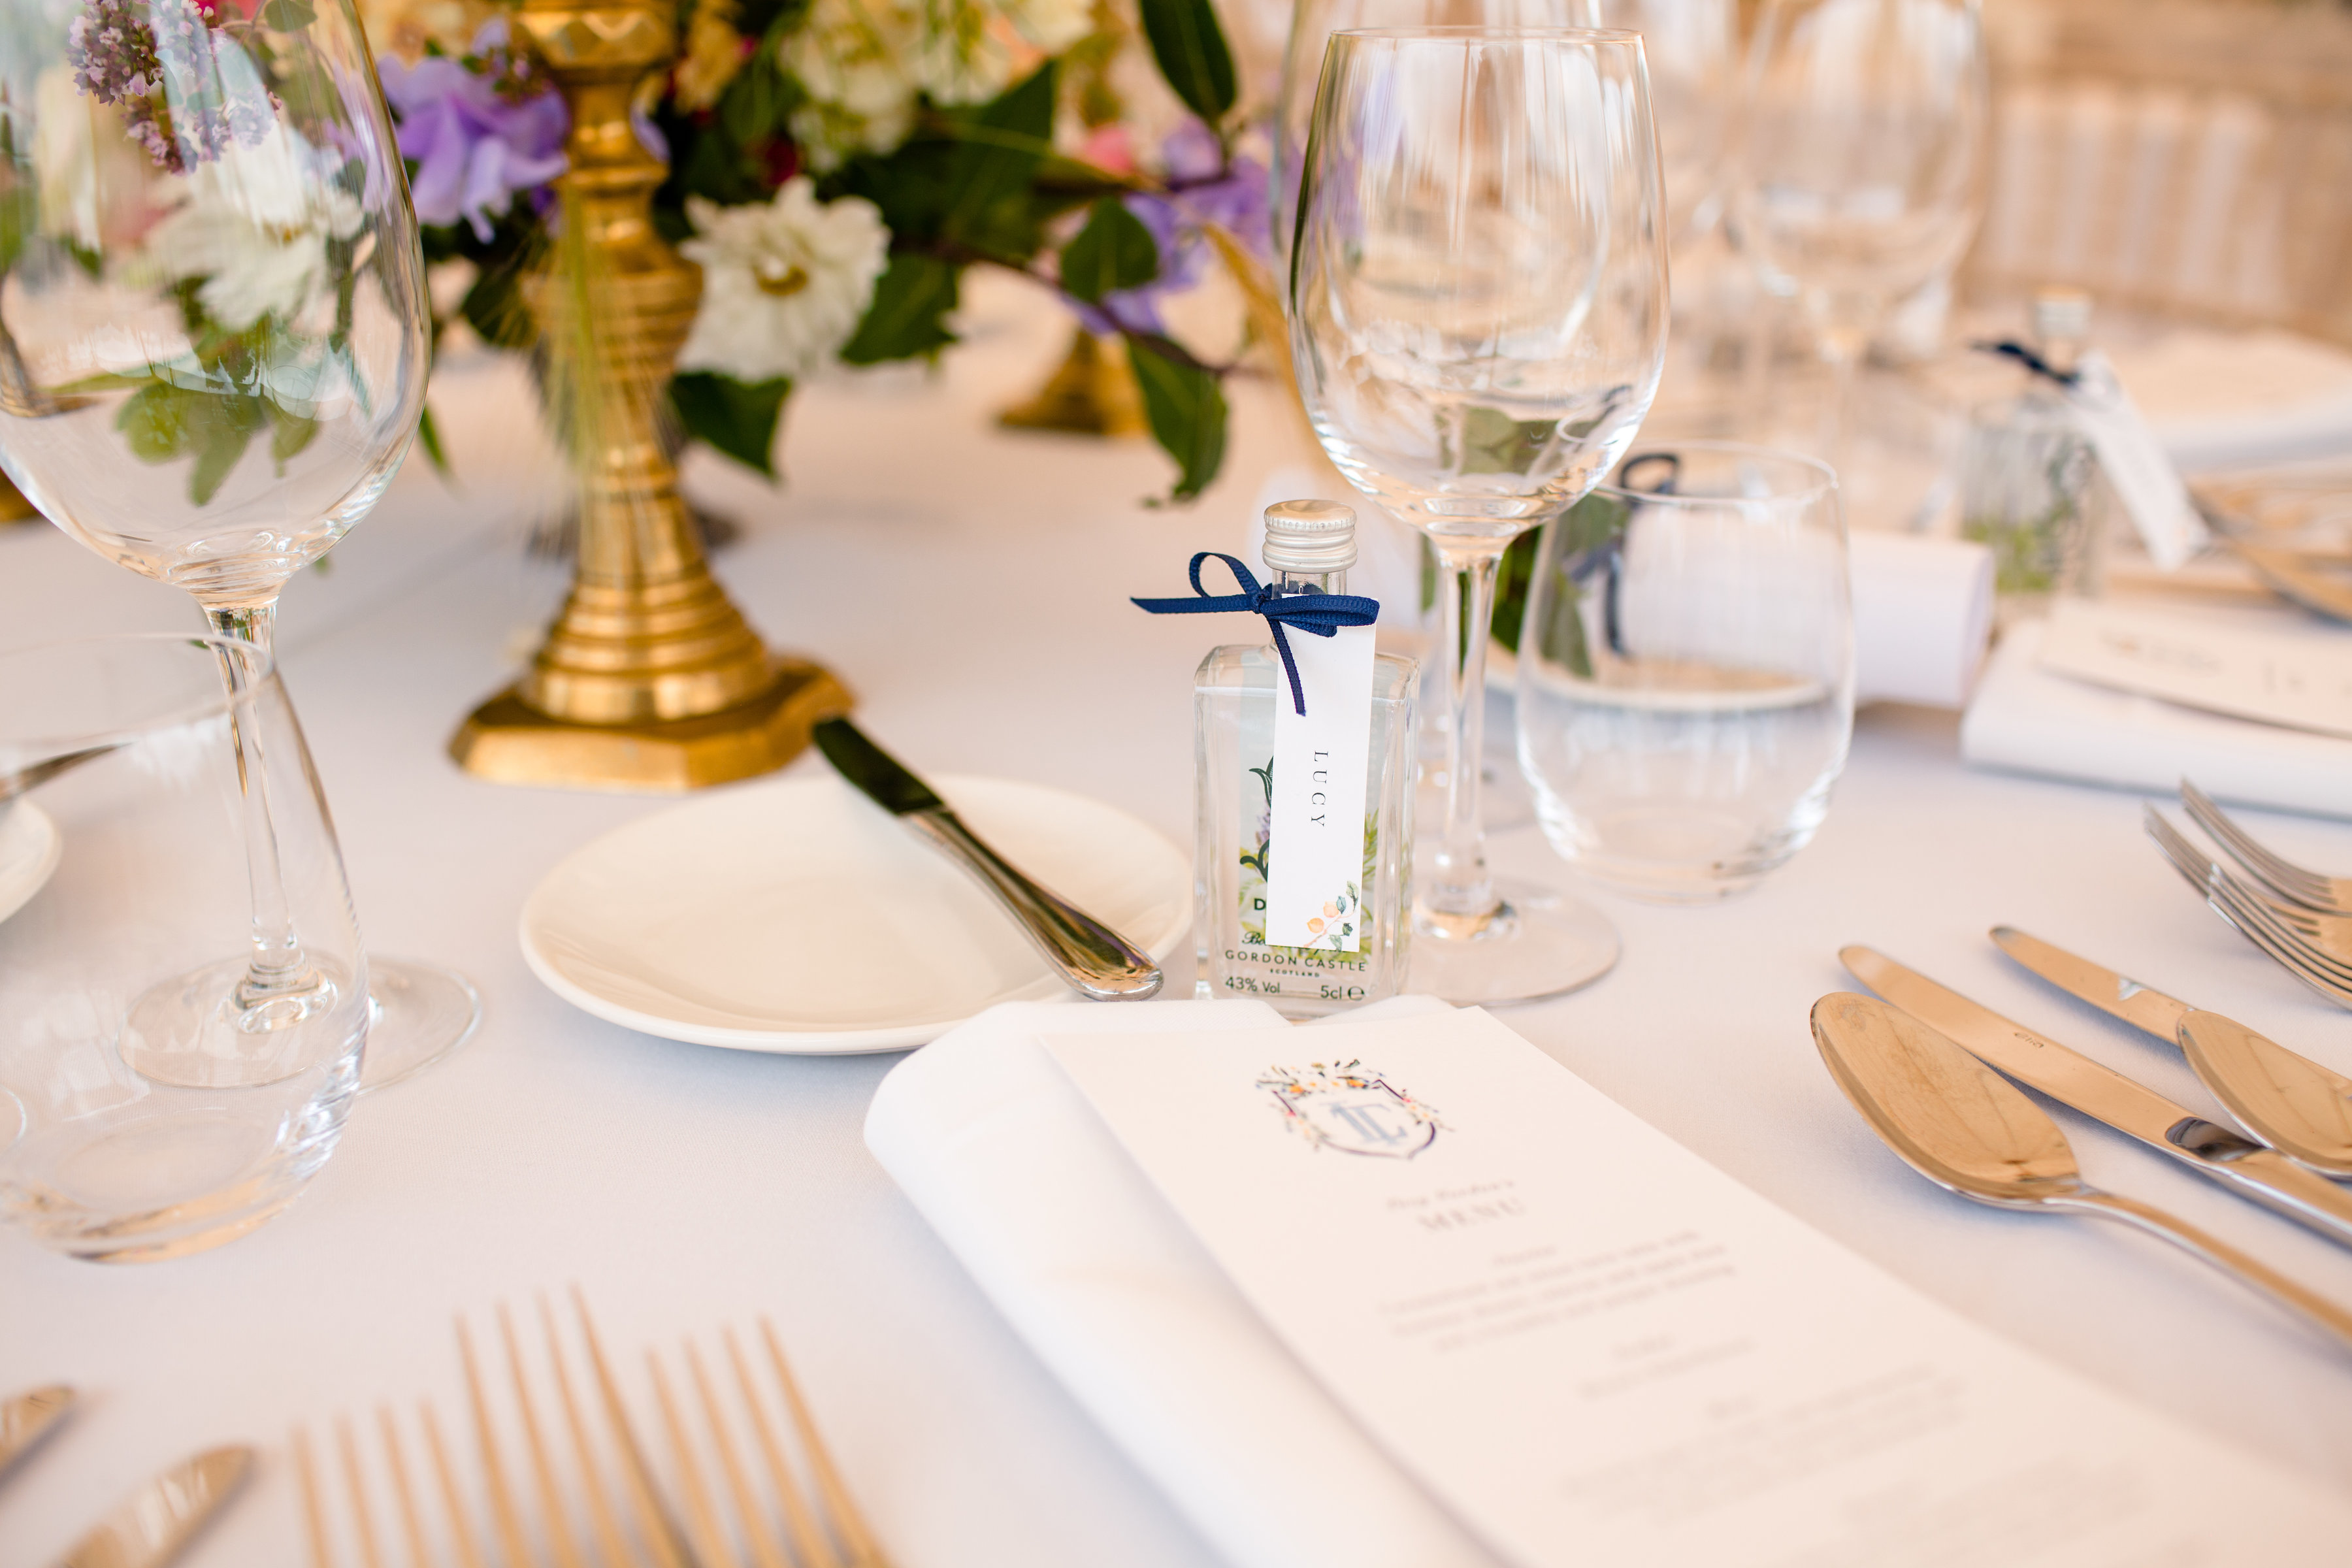 PapaKåta couple Lucy & Tom's Sperry Wedding at Gordon Castle Scotland captured by Helen Abraham Photography- mini gin bottle wedding favours